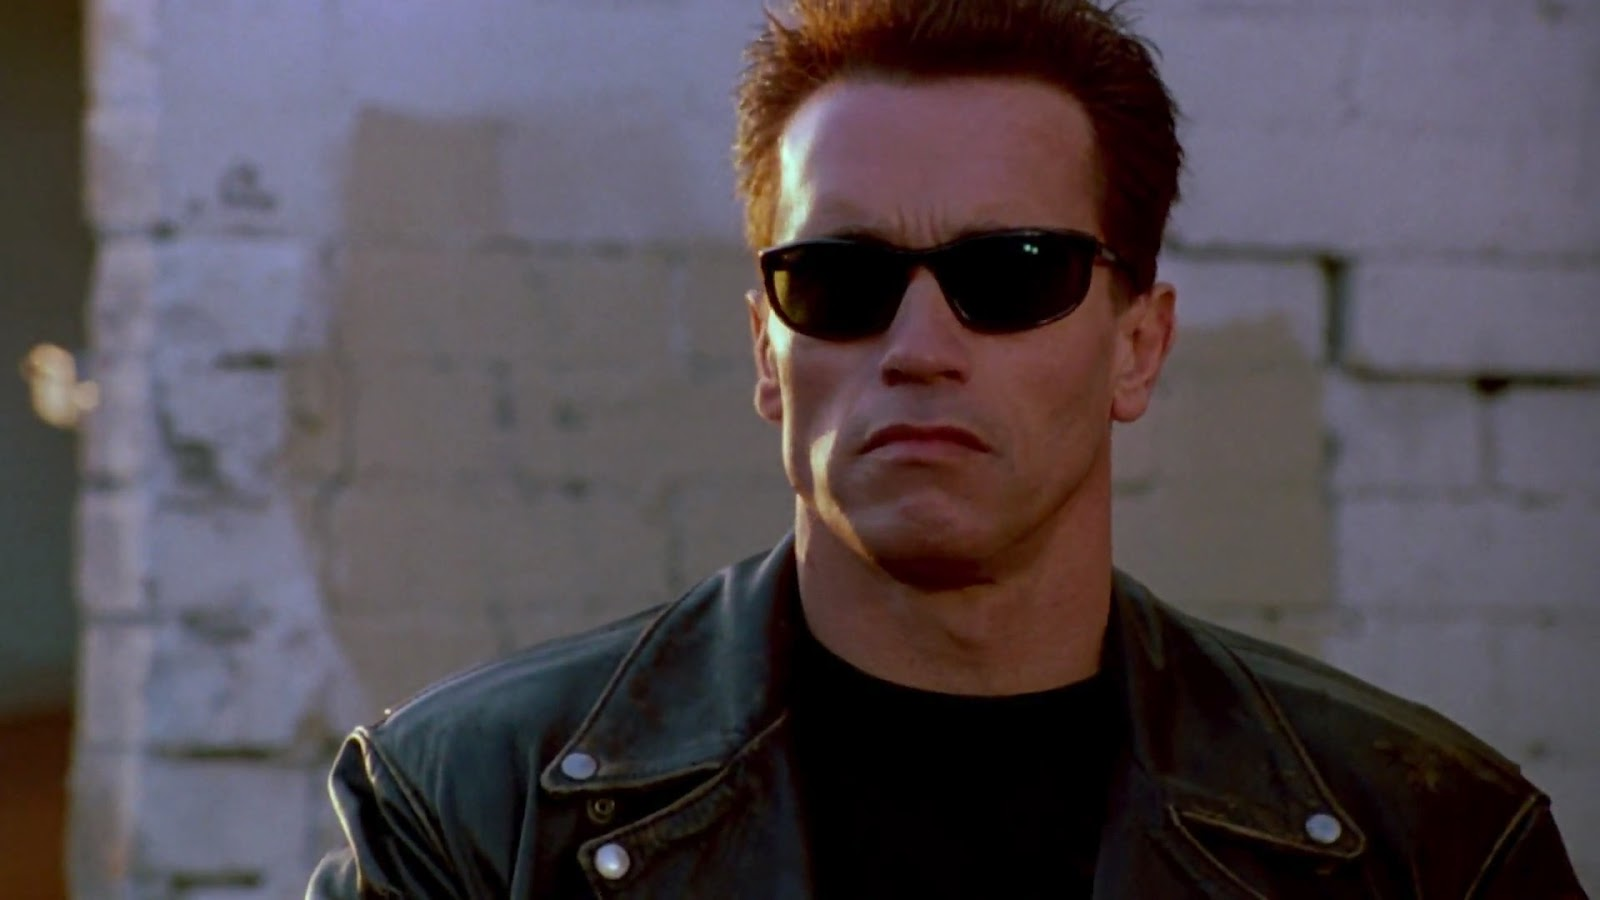 Arnold Schwarzenegger On Board For Terminator Reboot And Conclusion Of The Franchise.